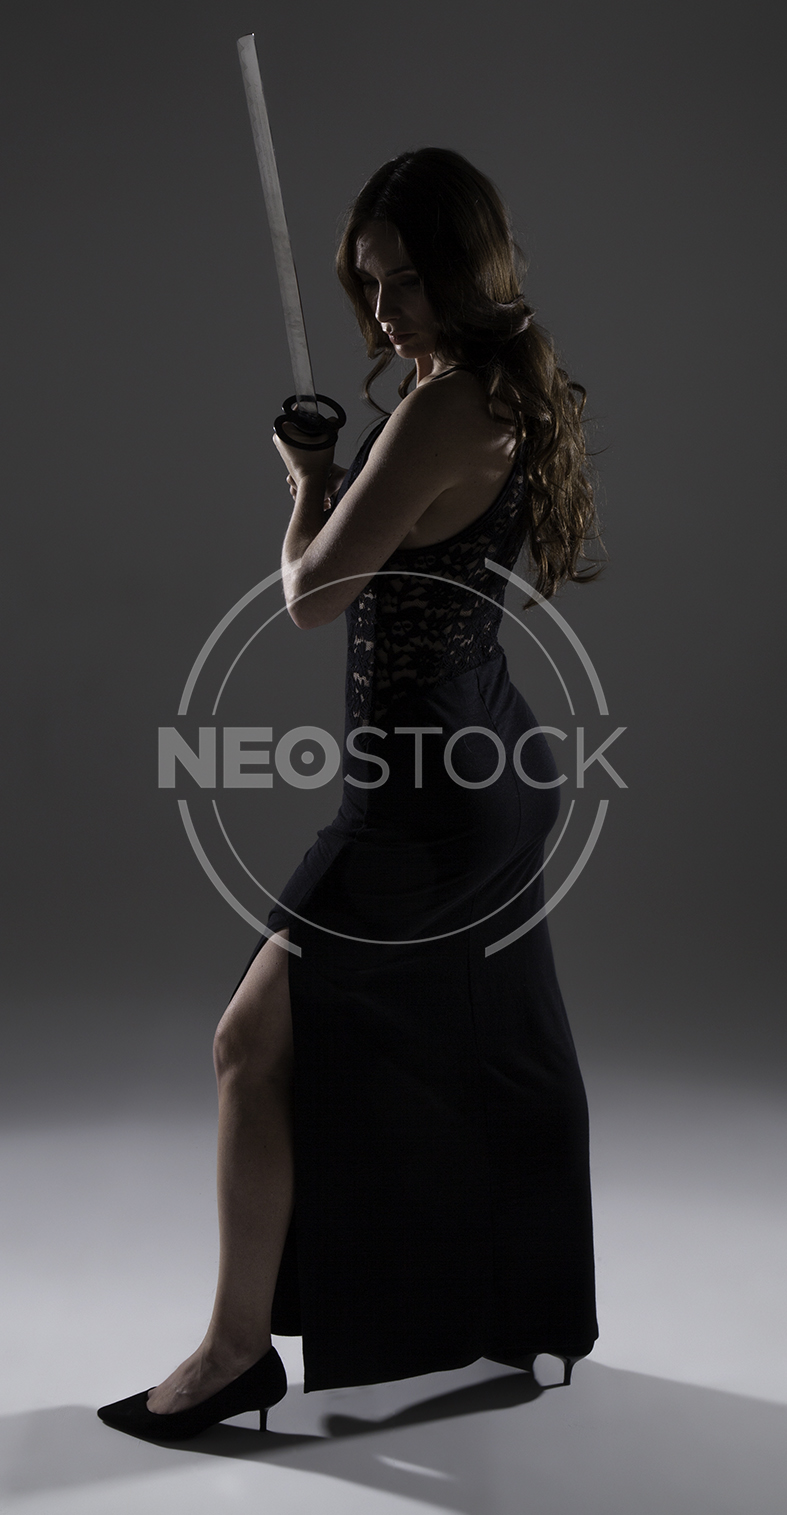 NeoStock - Cinematic Cocktail Assassin - Stock Photography III